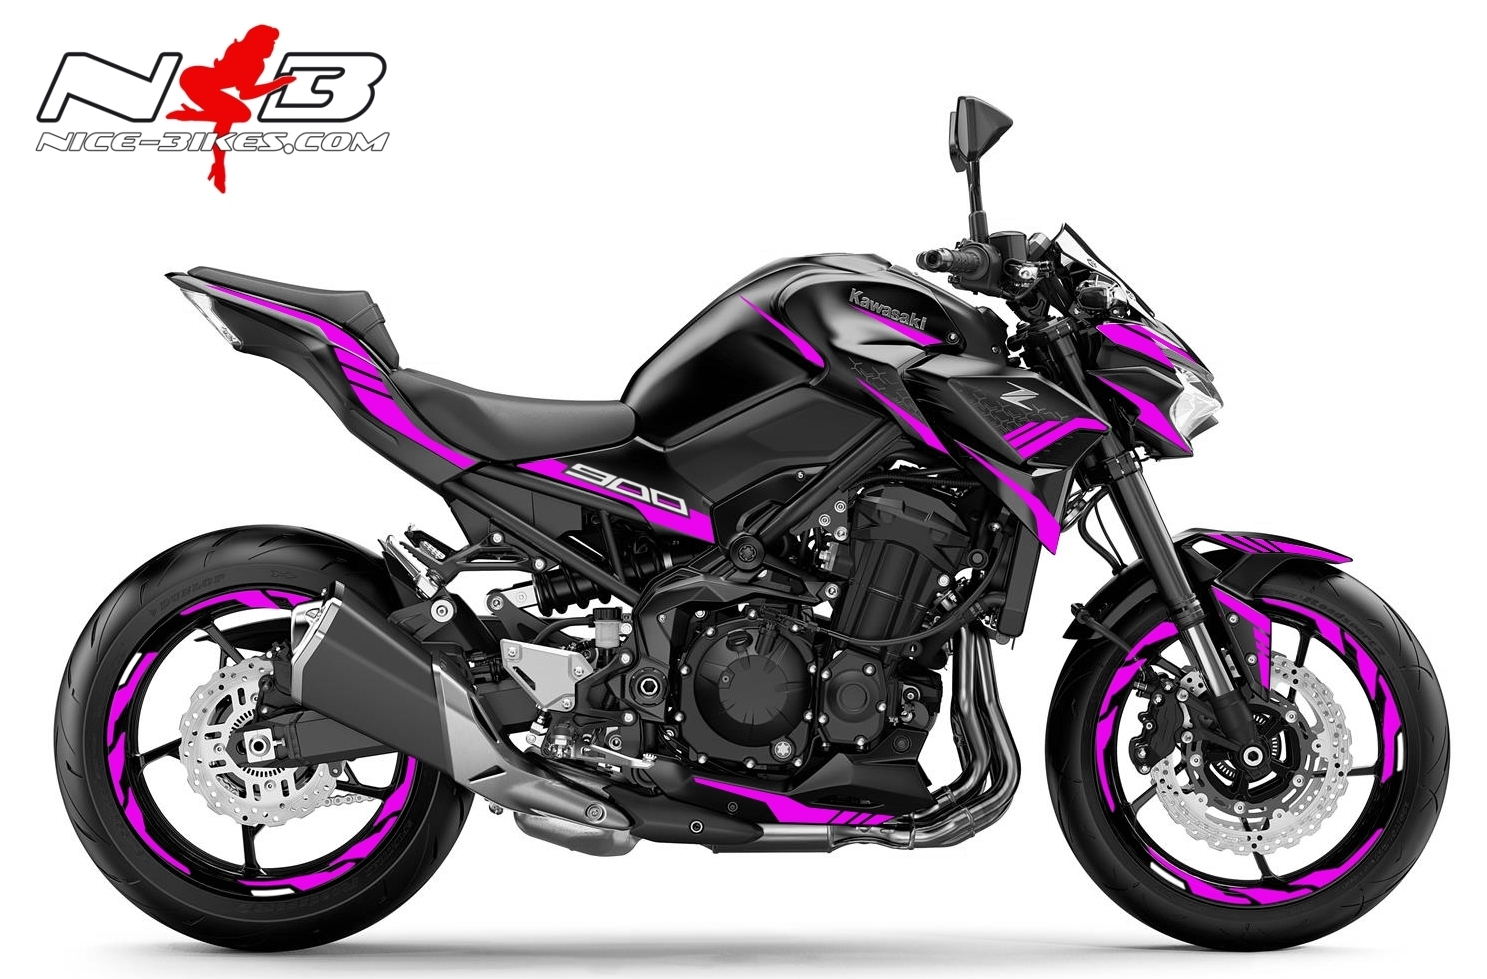 Foliendesign Kawasaki Z900 Bj. 2020 Pretty Pink